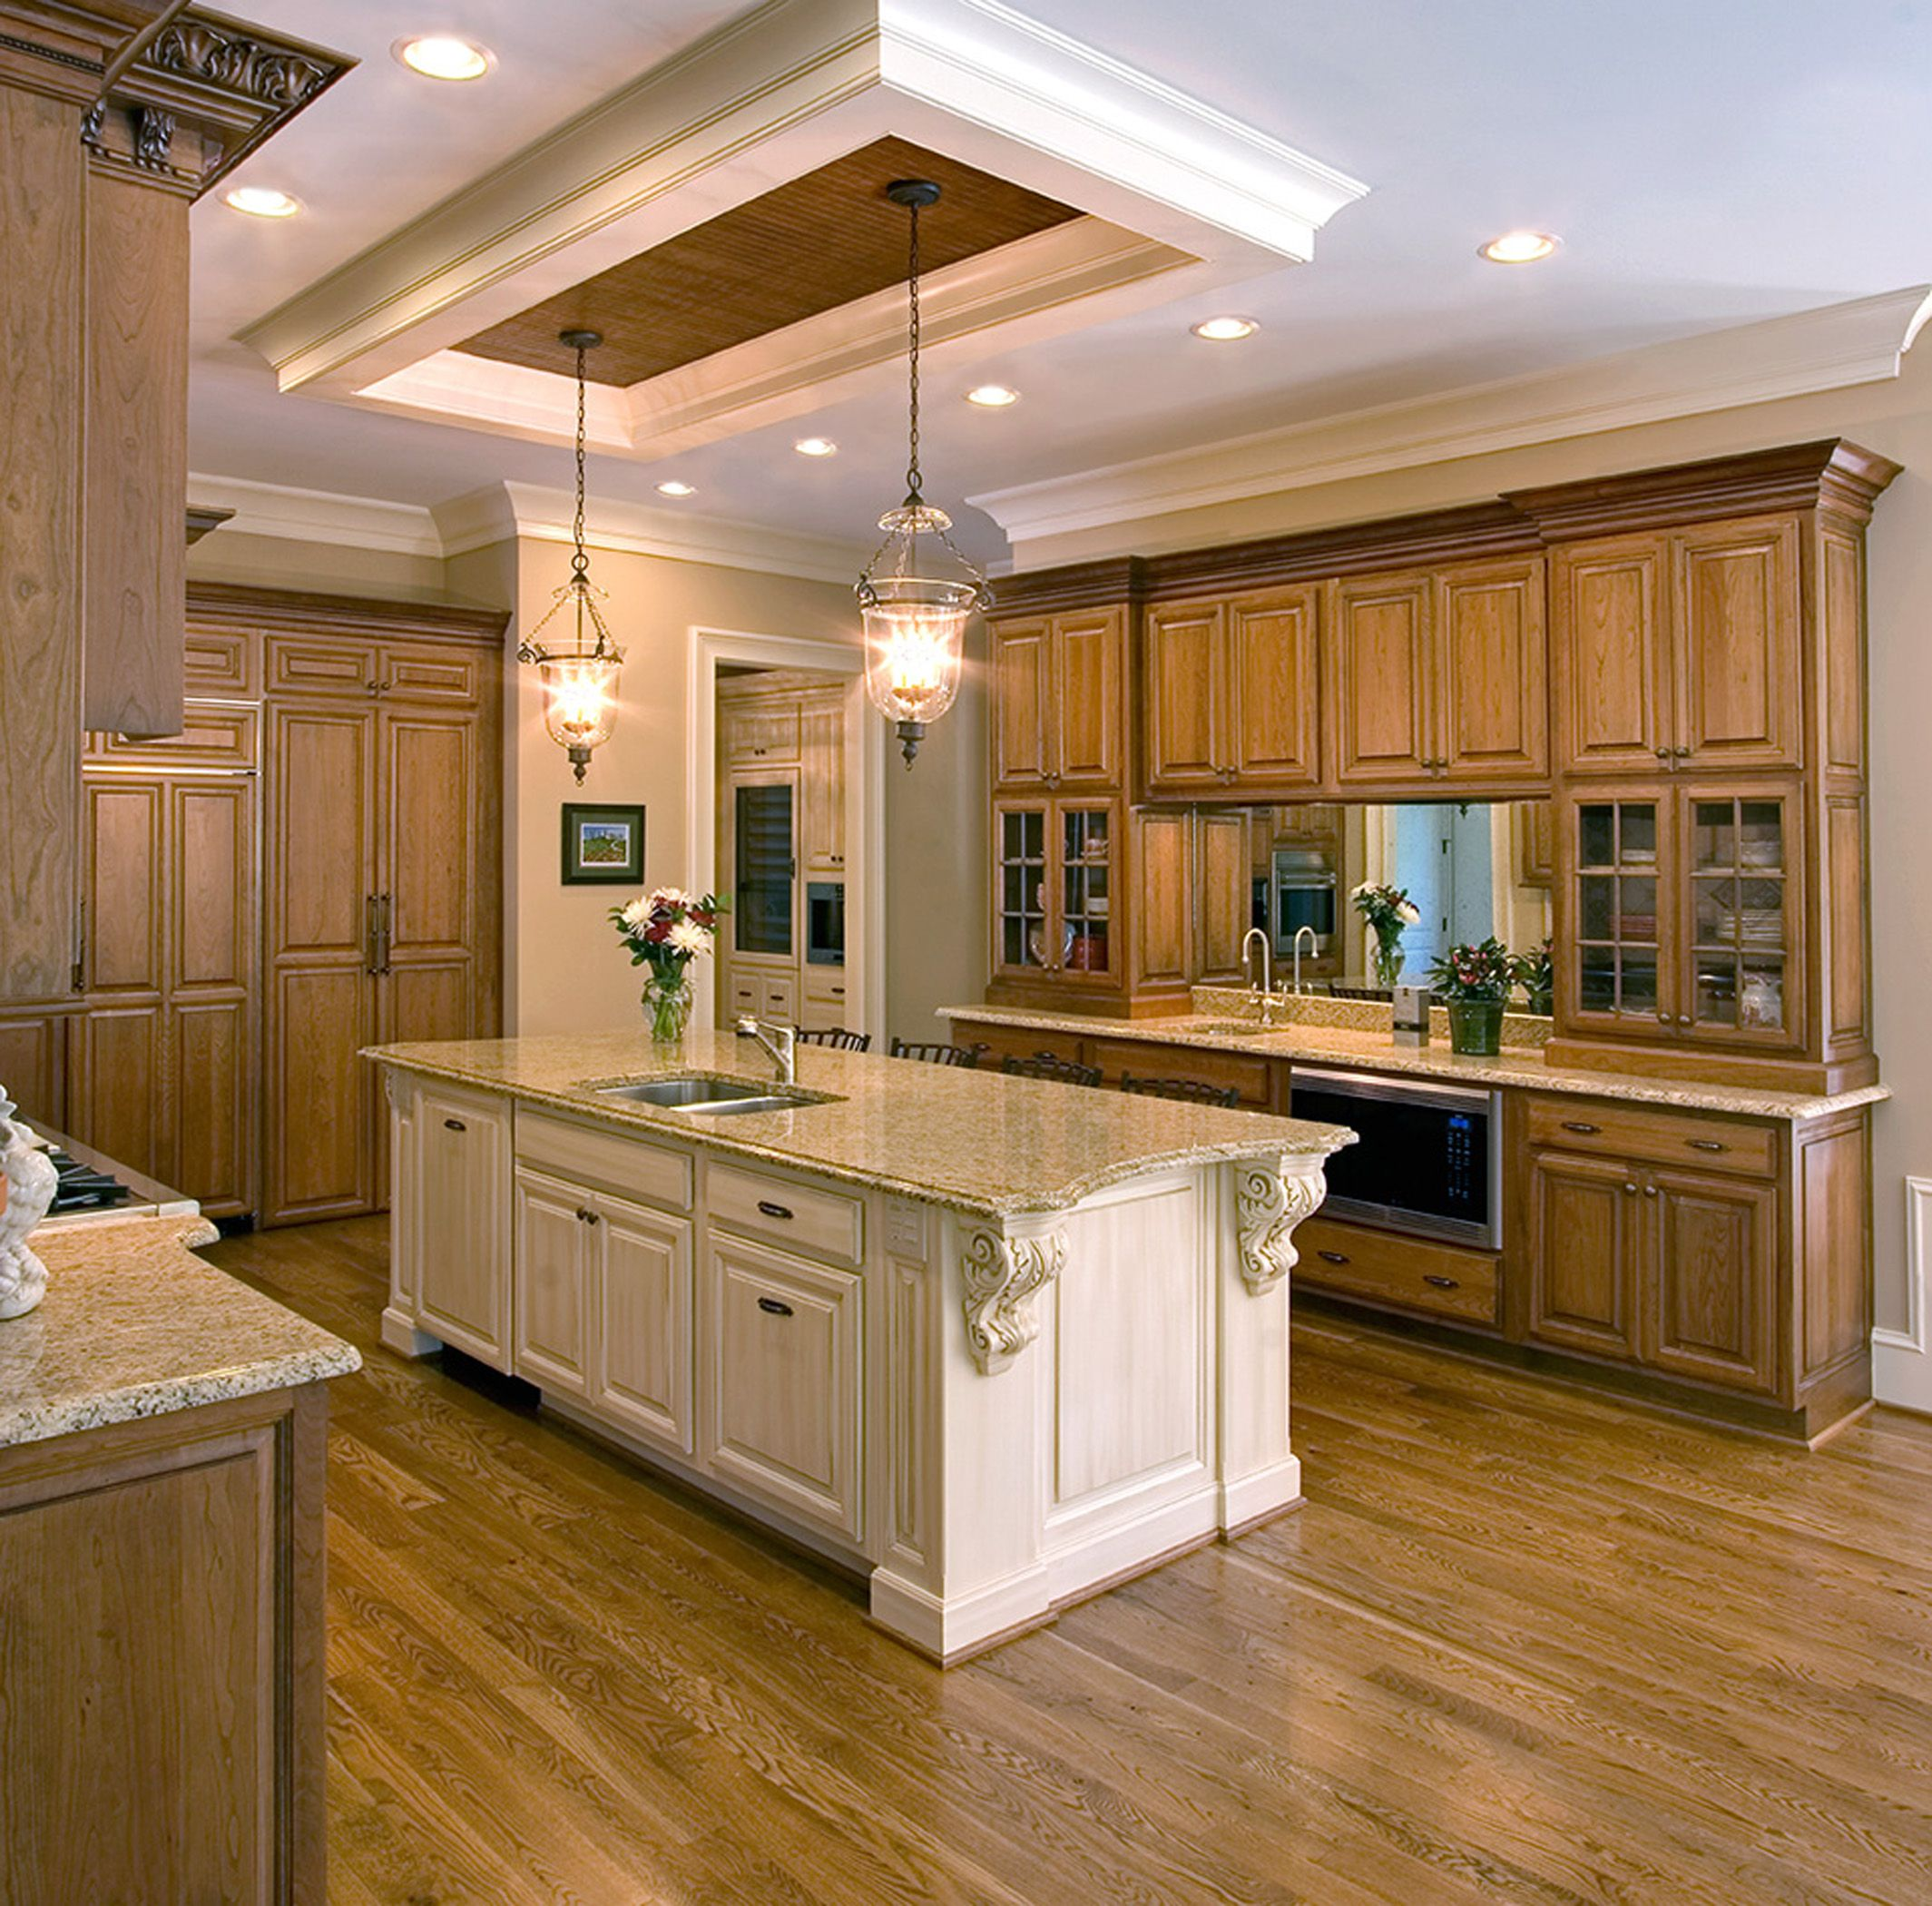 Custom Wood Products Kitchen Cabinets Kitchen Bathroom Remodel Bathroom Remodel Designs Kitchen And Bath Remodeling